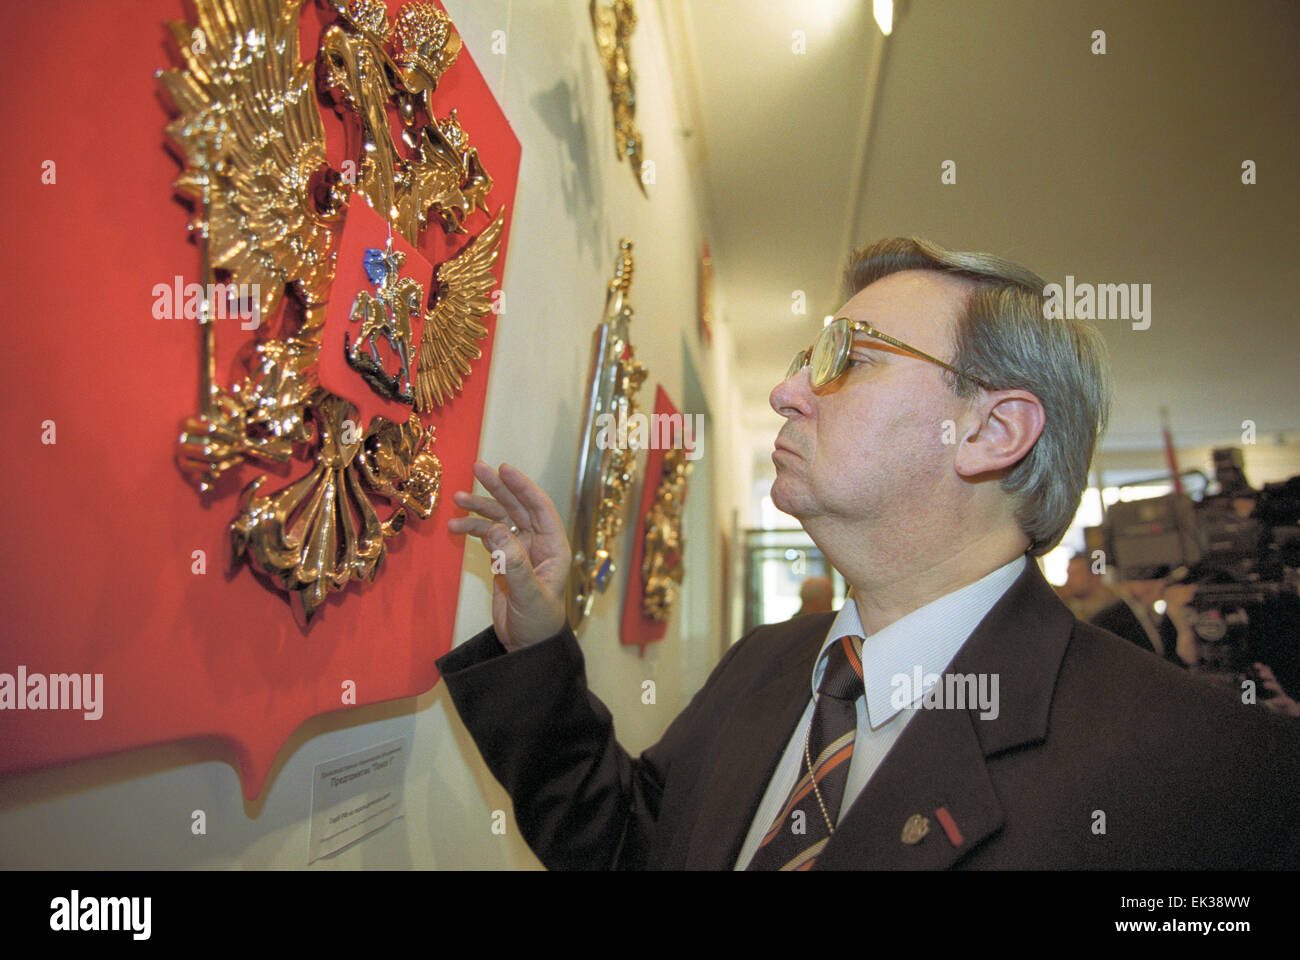 TAS14: St. PETERSBURG, RUSSIA. FEBRUARY 27. Head of heraldry service of Russia Georgy Vilinbakhov in pic inspecting - Stock Image